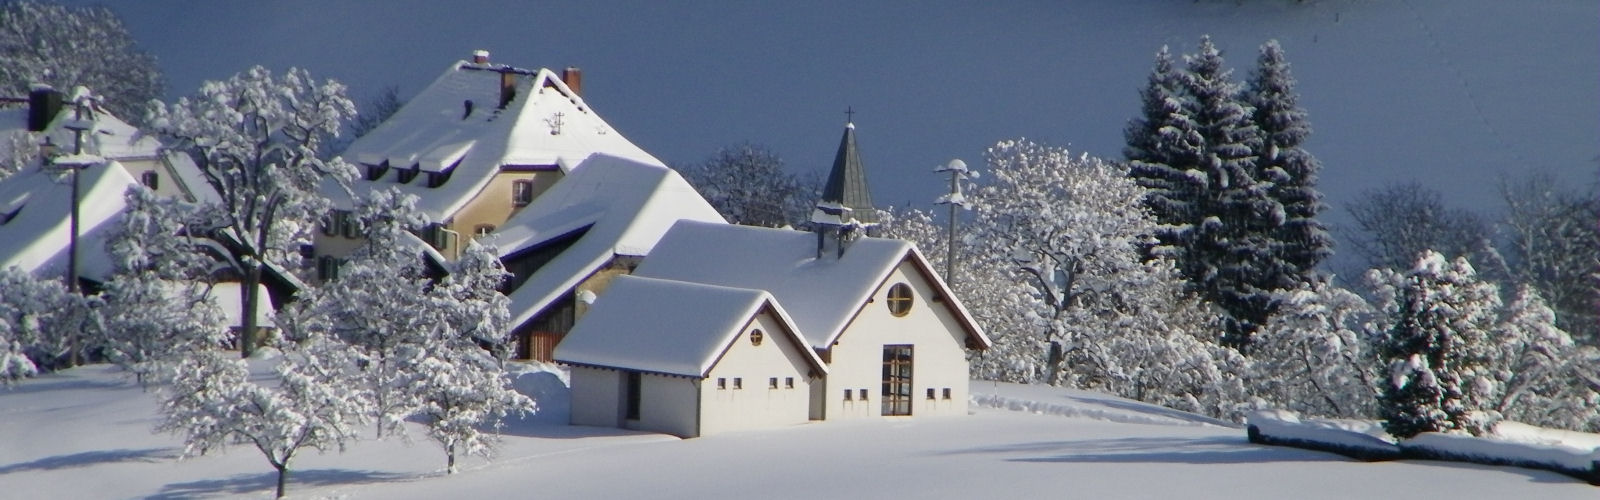 Rieder Kapelle im Winter